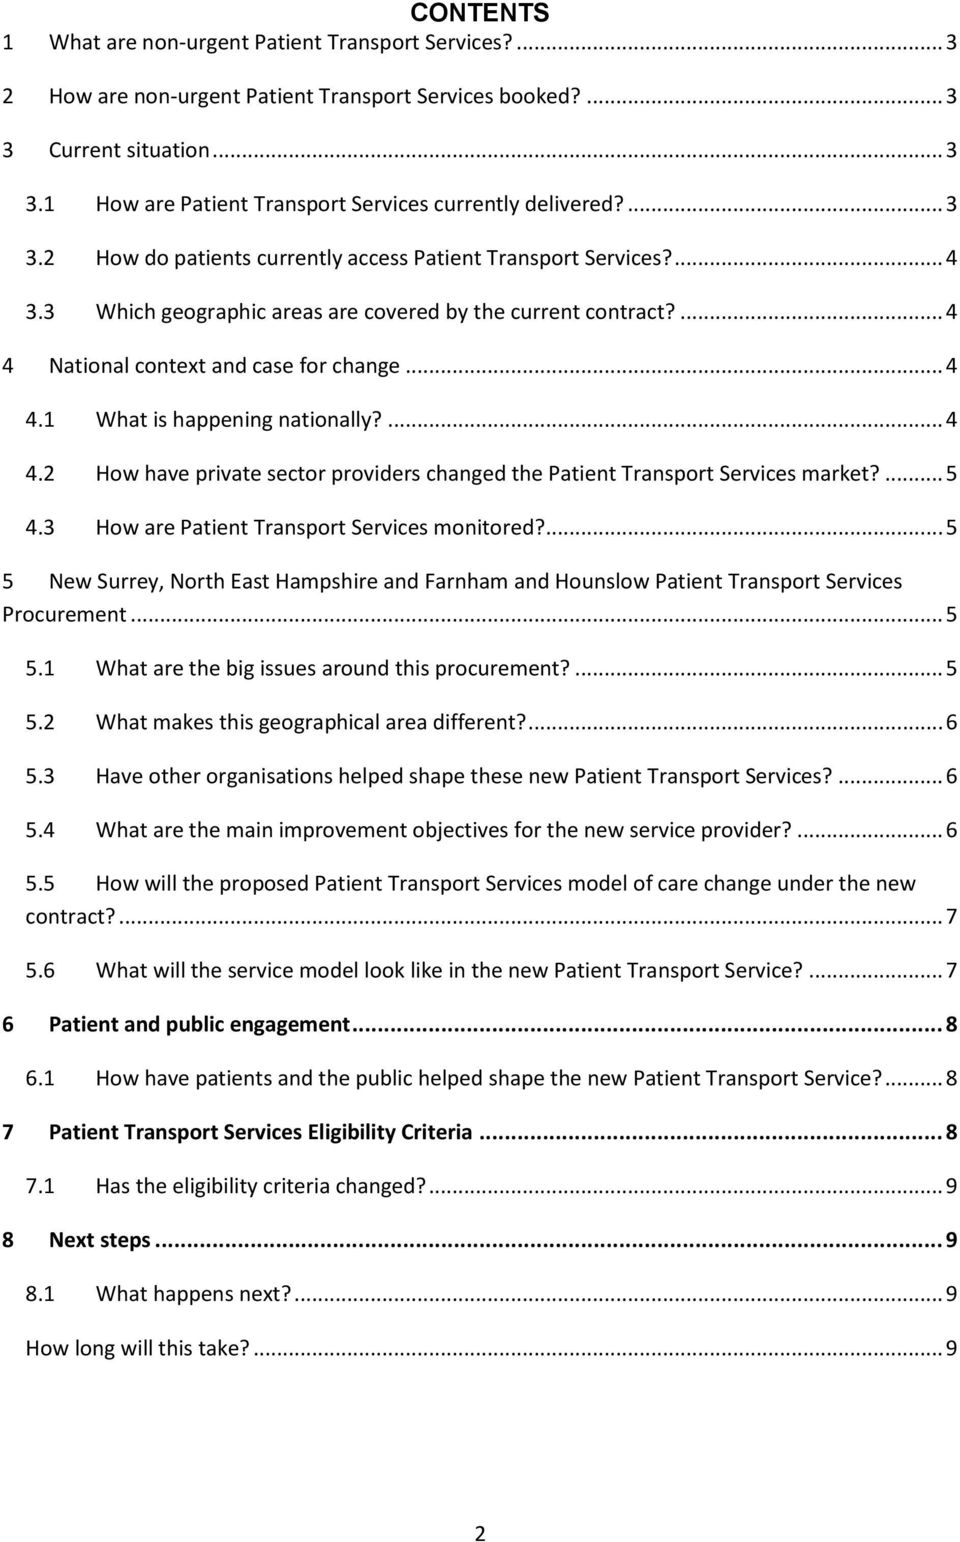 ... 4 4.2 How have private sector providers changed the Patient Transport Services market?... 5 4.3 How are Patient Transport Services monitored?